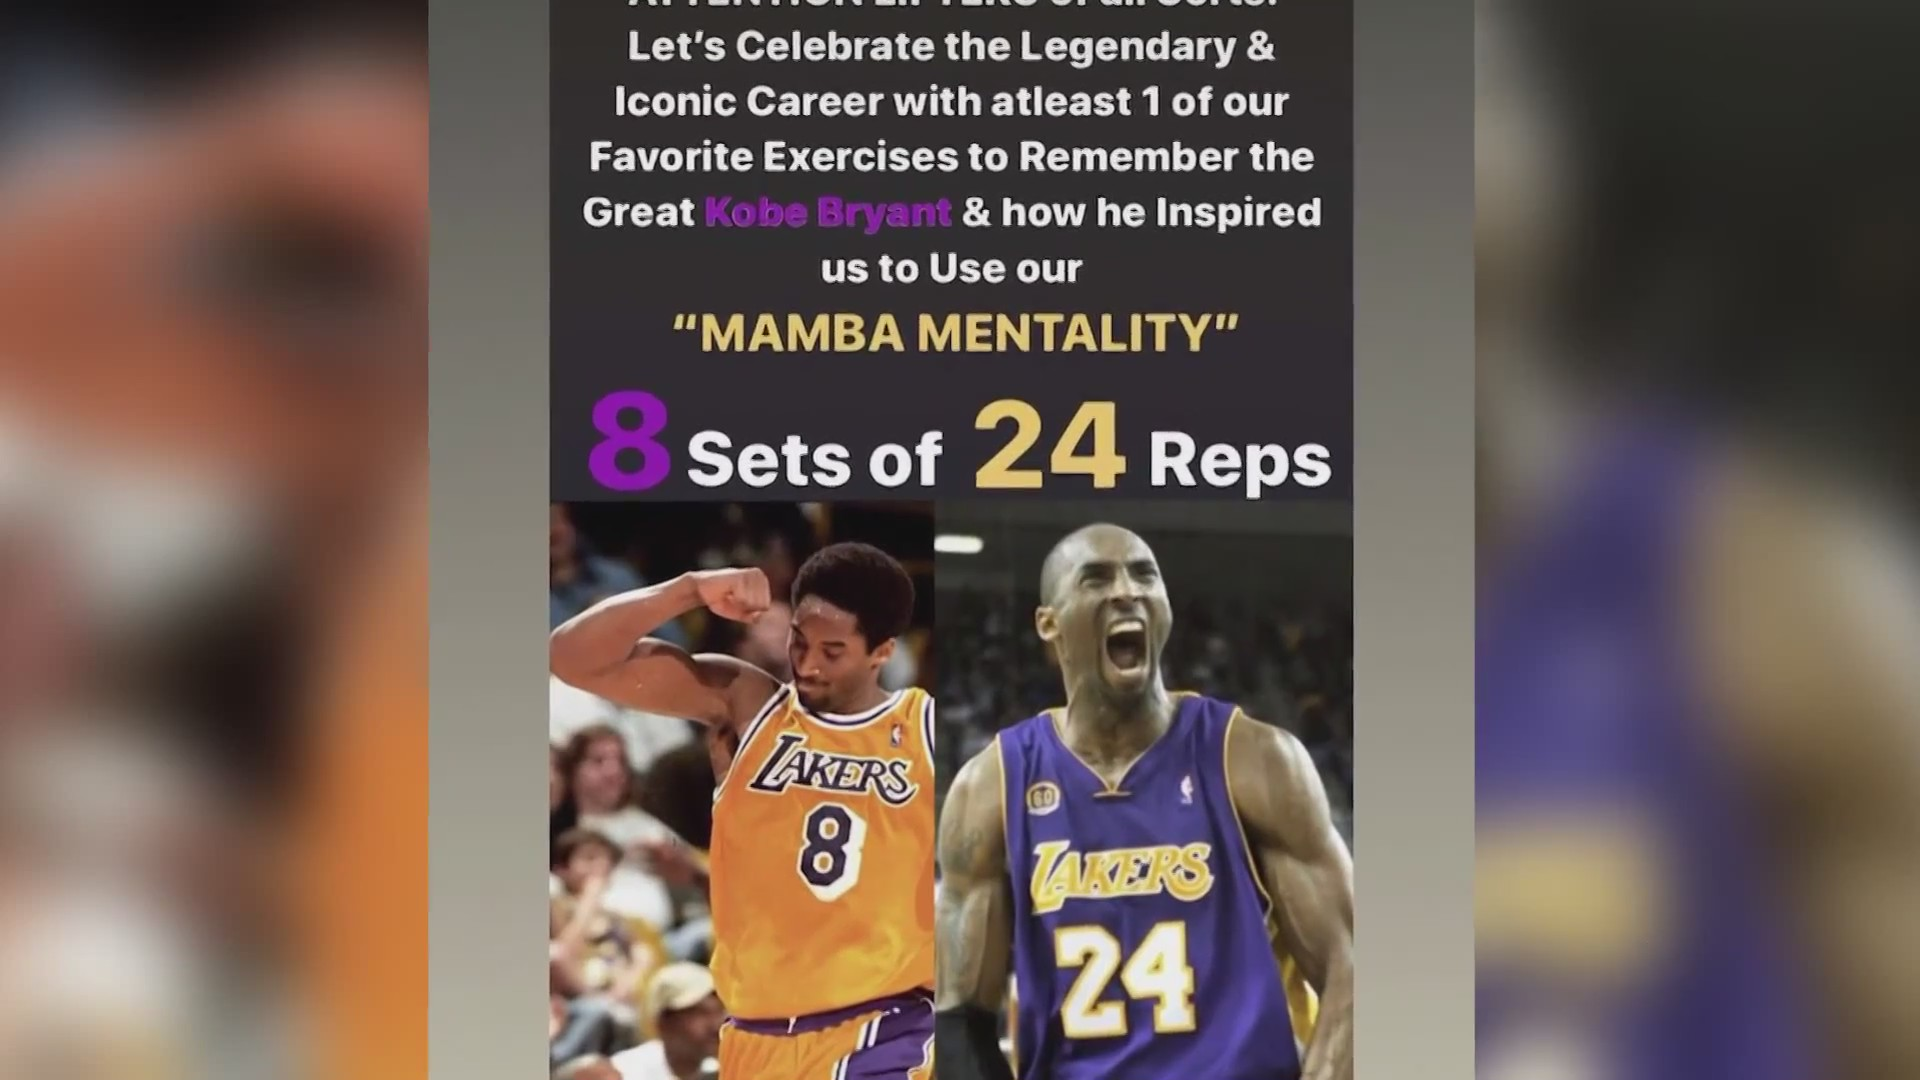 Local Gym Creates Mamba Mentality Workout Challenge In Honor Of Late Kobe Bryant Krqe News 13